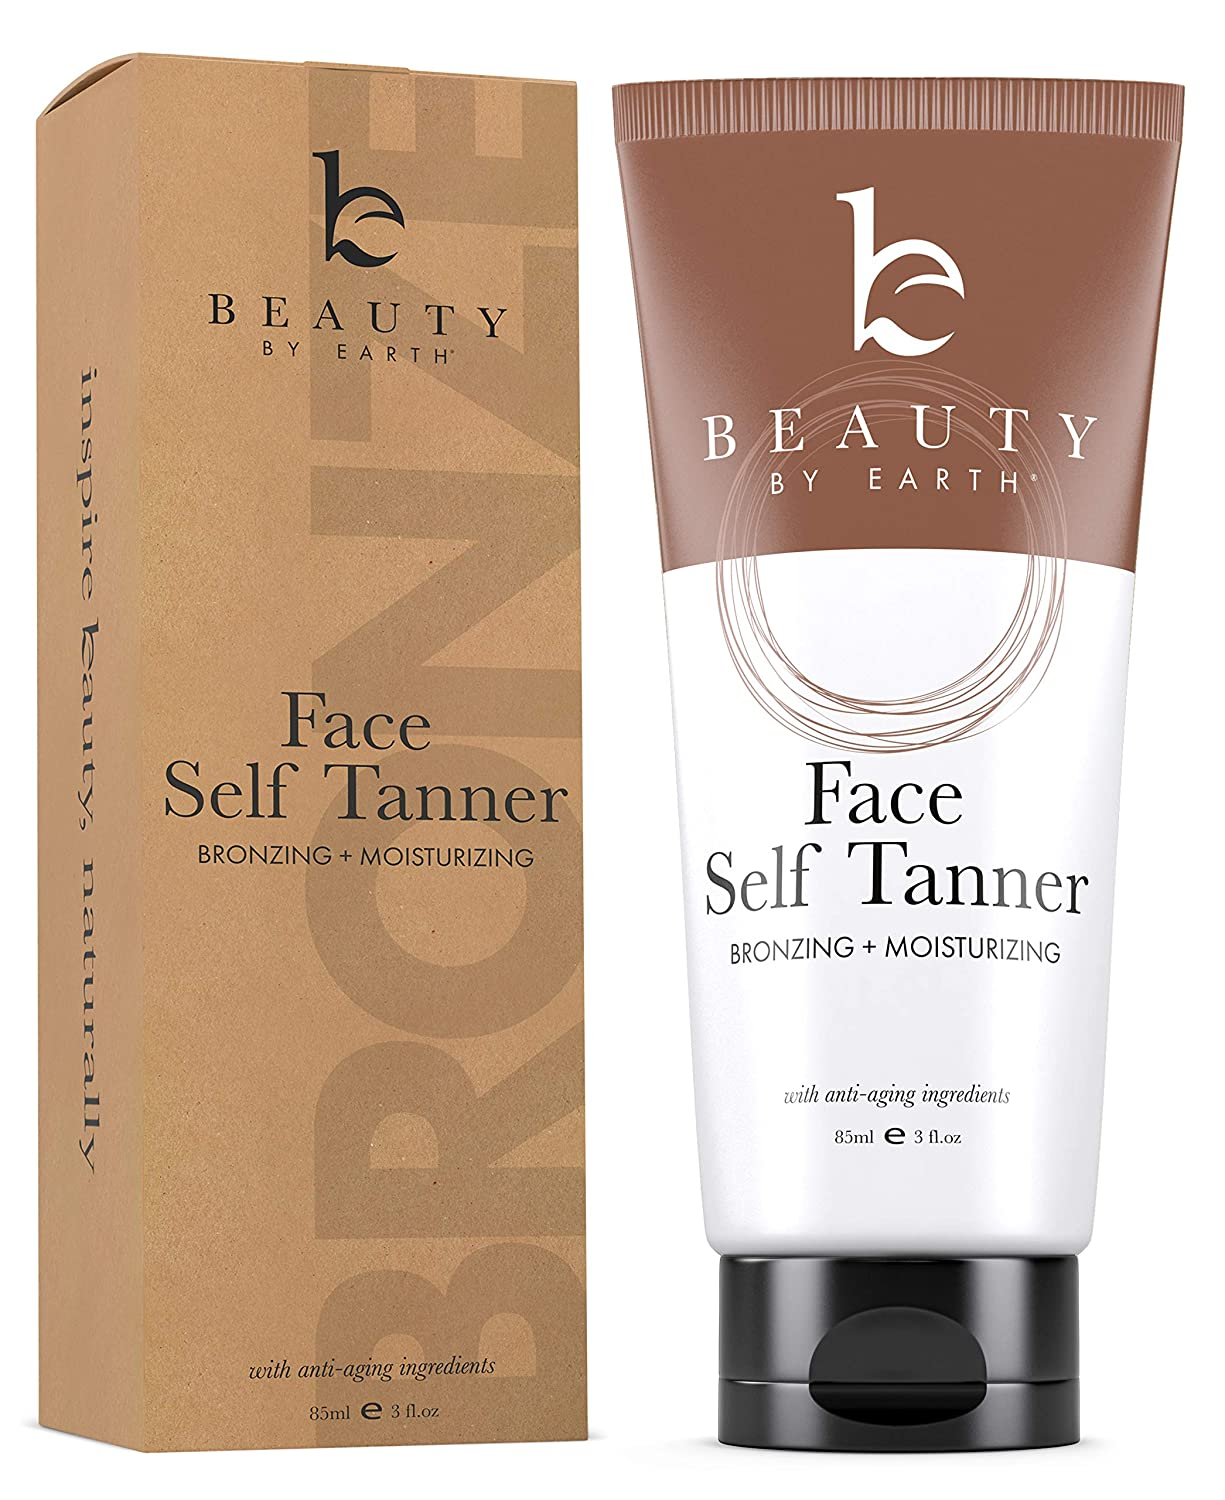 Beauty by Earth Best Face Self Tanner for Acne Prone Skin